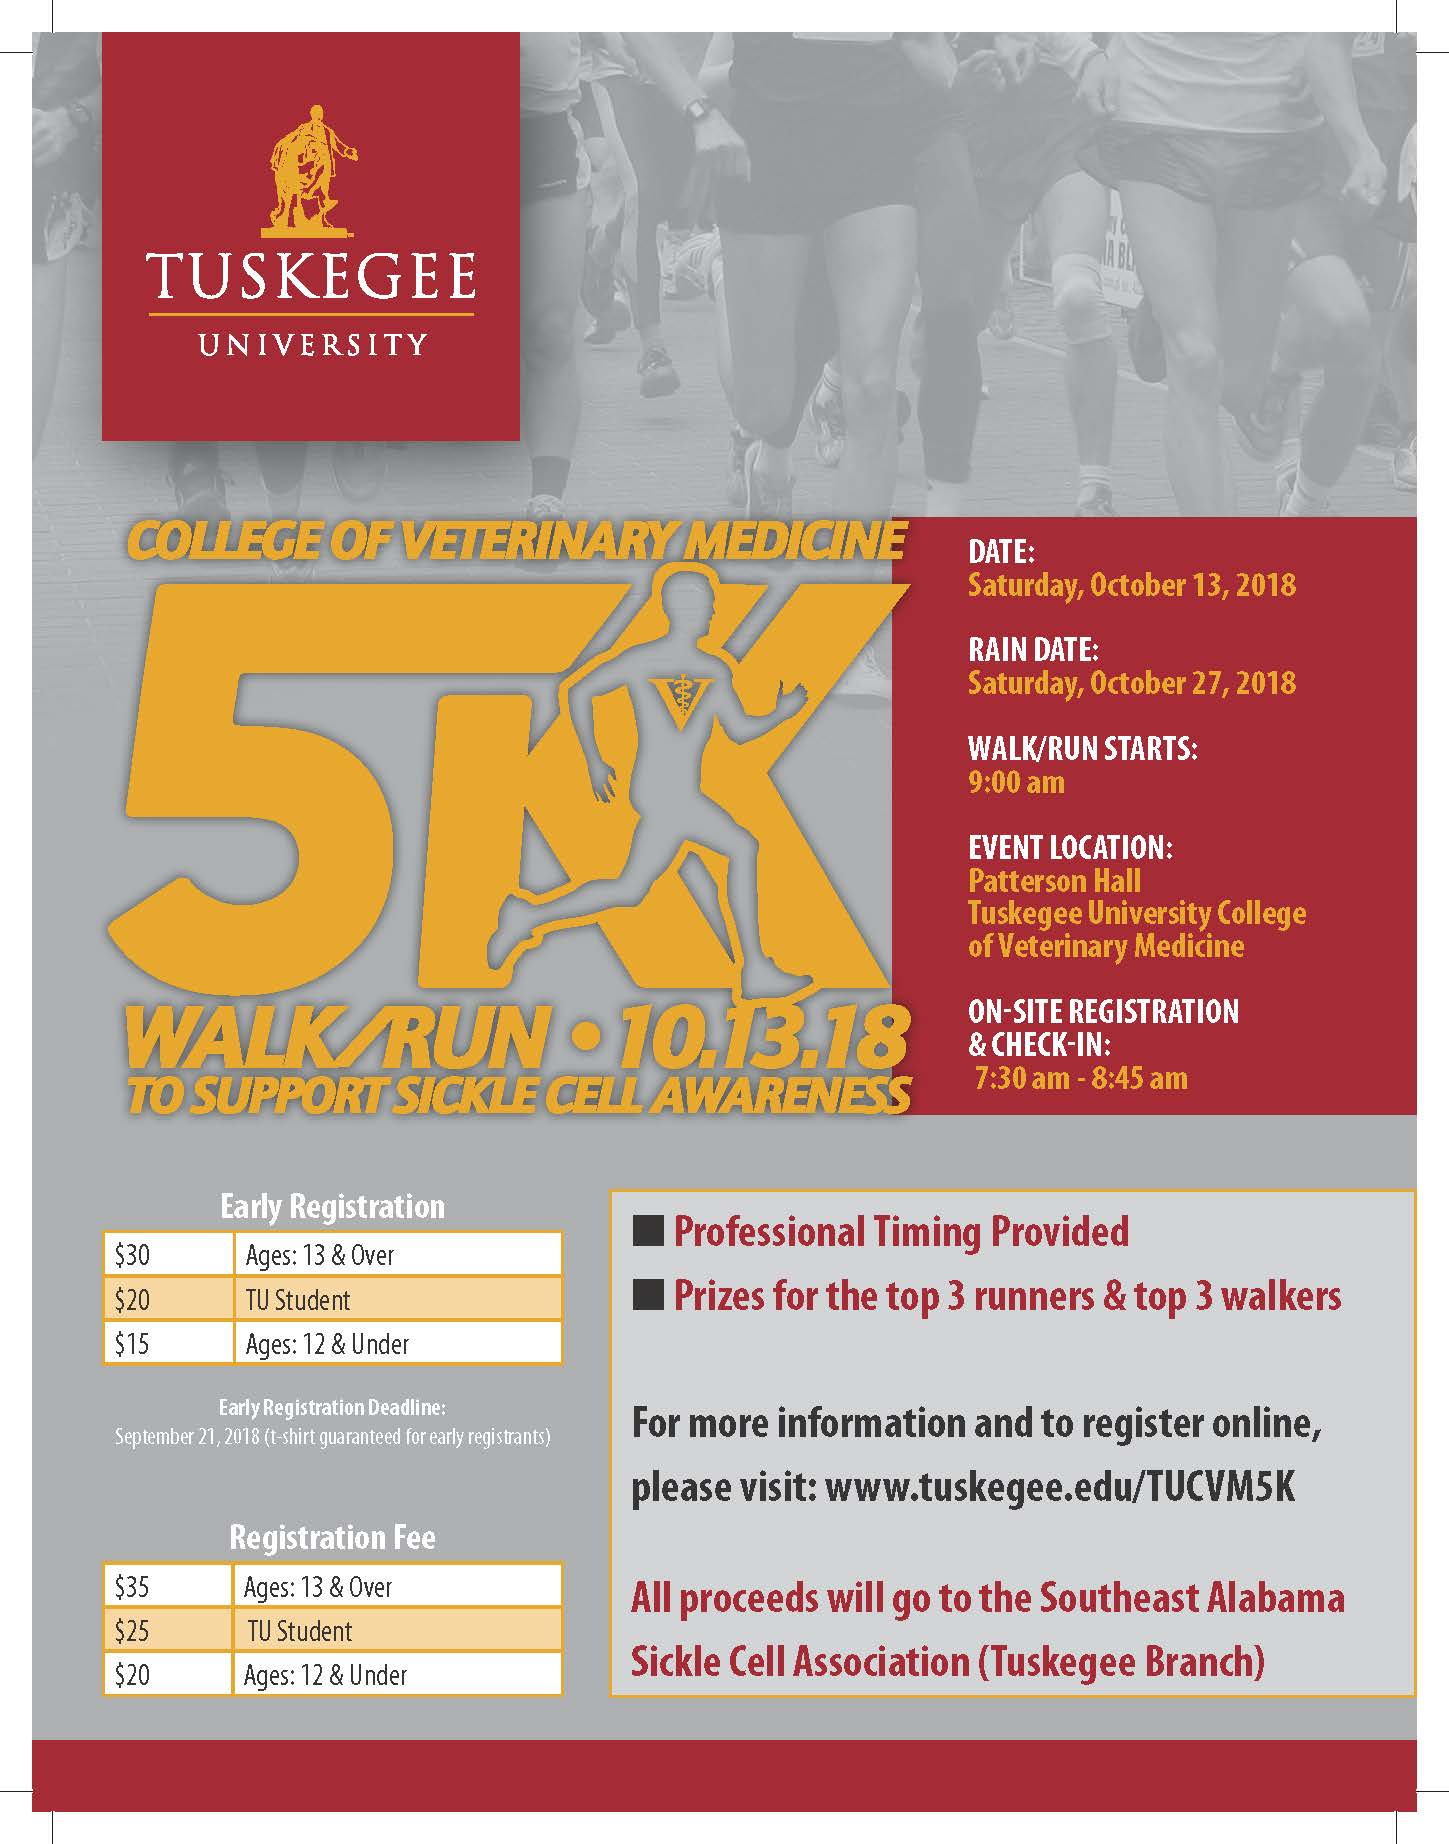 Veterinary medicine 5K event flyer